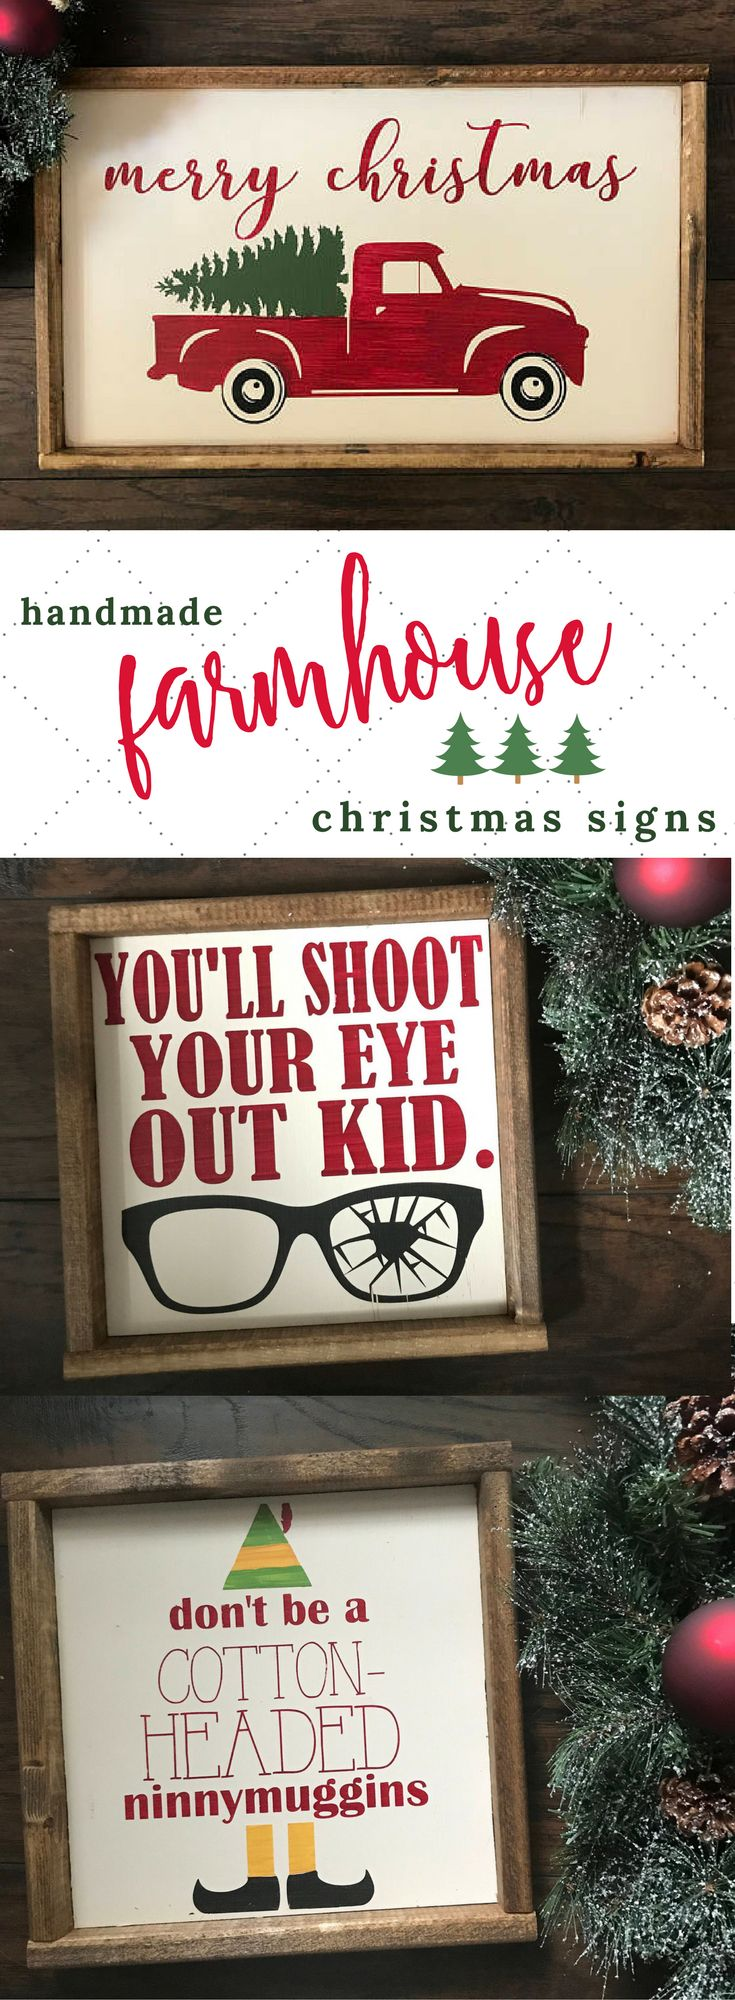 I just love, love, love this darling Farmhouse Christmas Picture!!! Bebe'CTBelle!!! This would make a really great Christmas Gift for a friend!!!